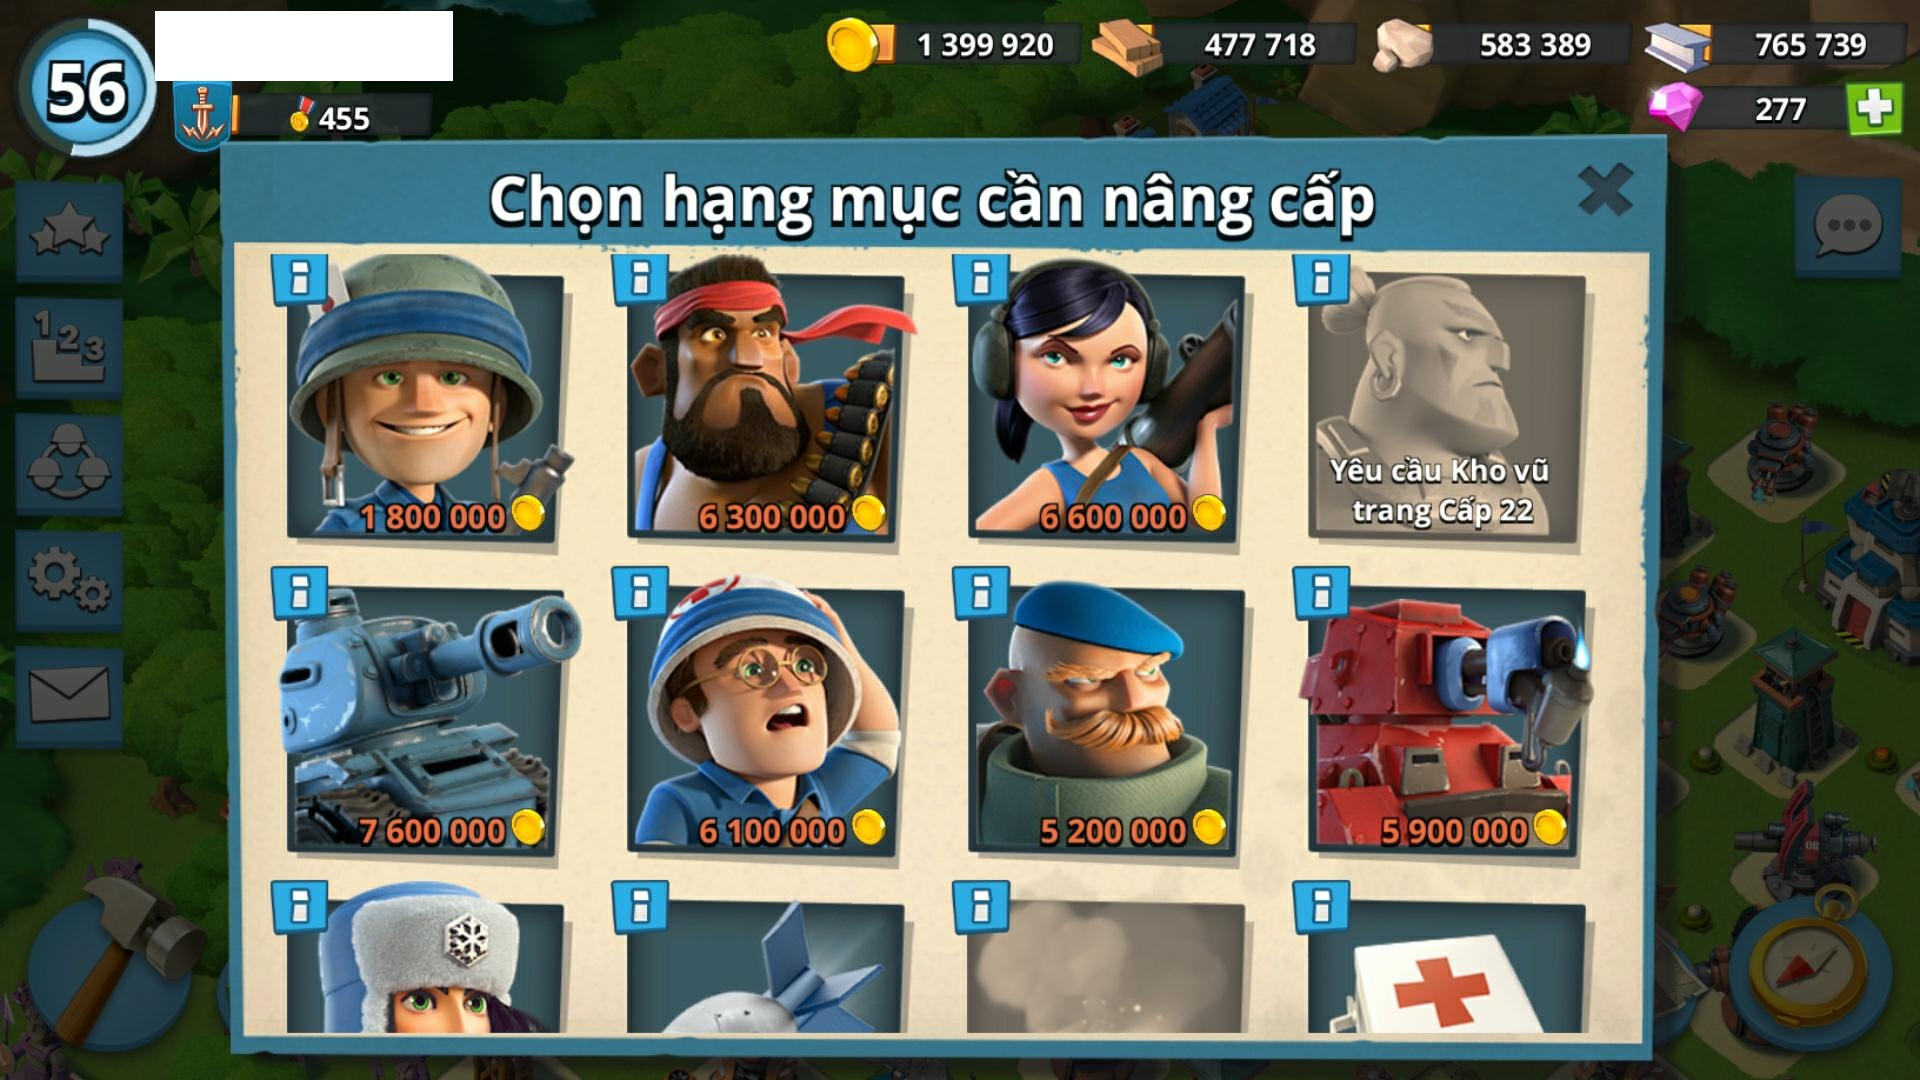 P025) Boom beach level 56, Name change : Available, Power powders 651